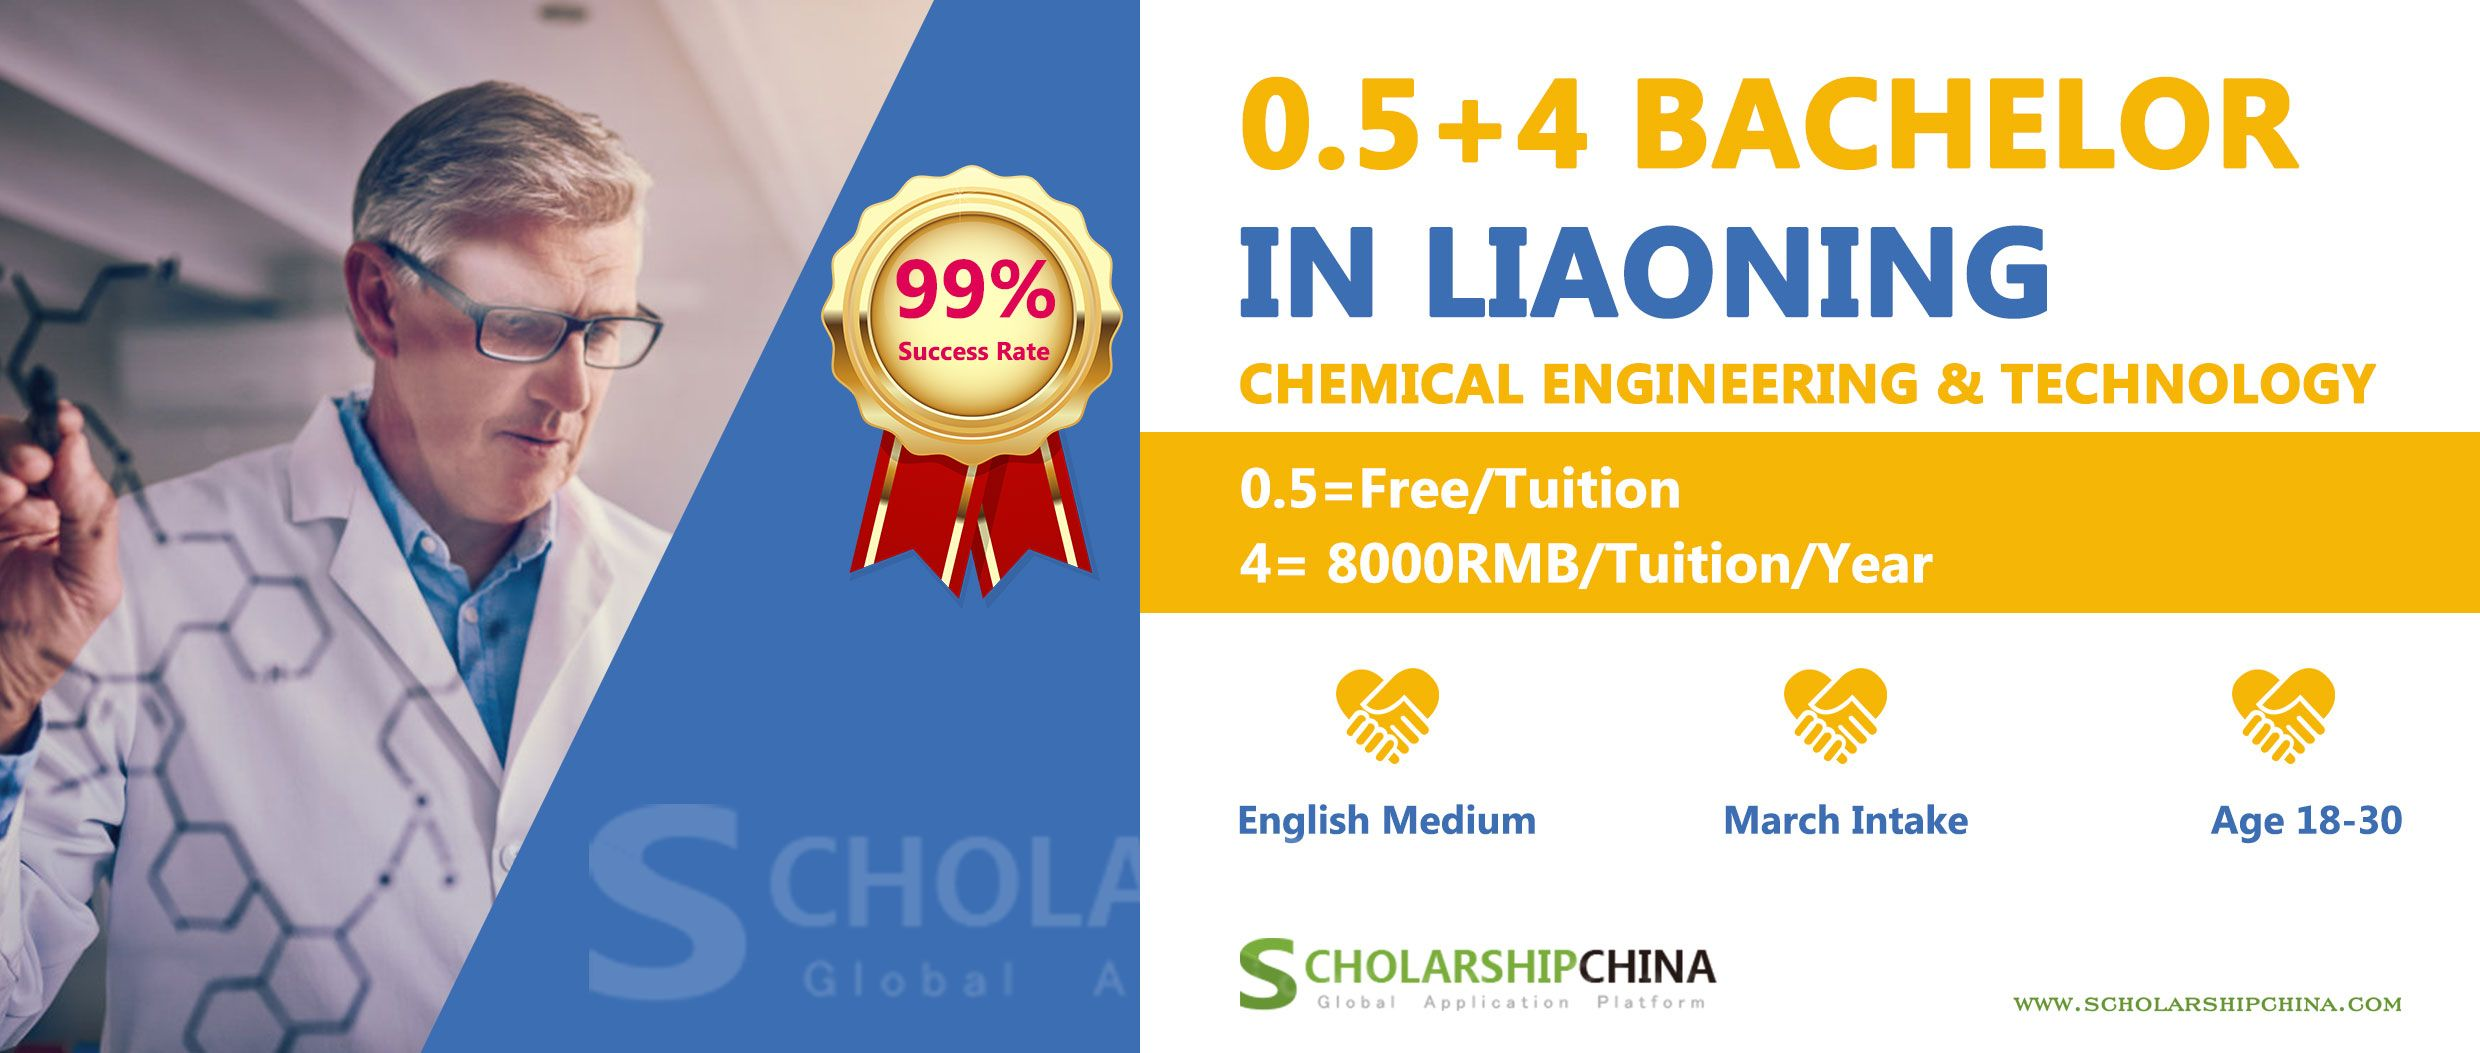 Chemical Engineering And Technology Study In China Bachelor Degree Scholarships Study In China International Students Scholarships